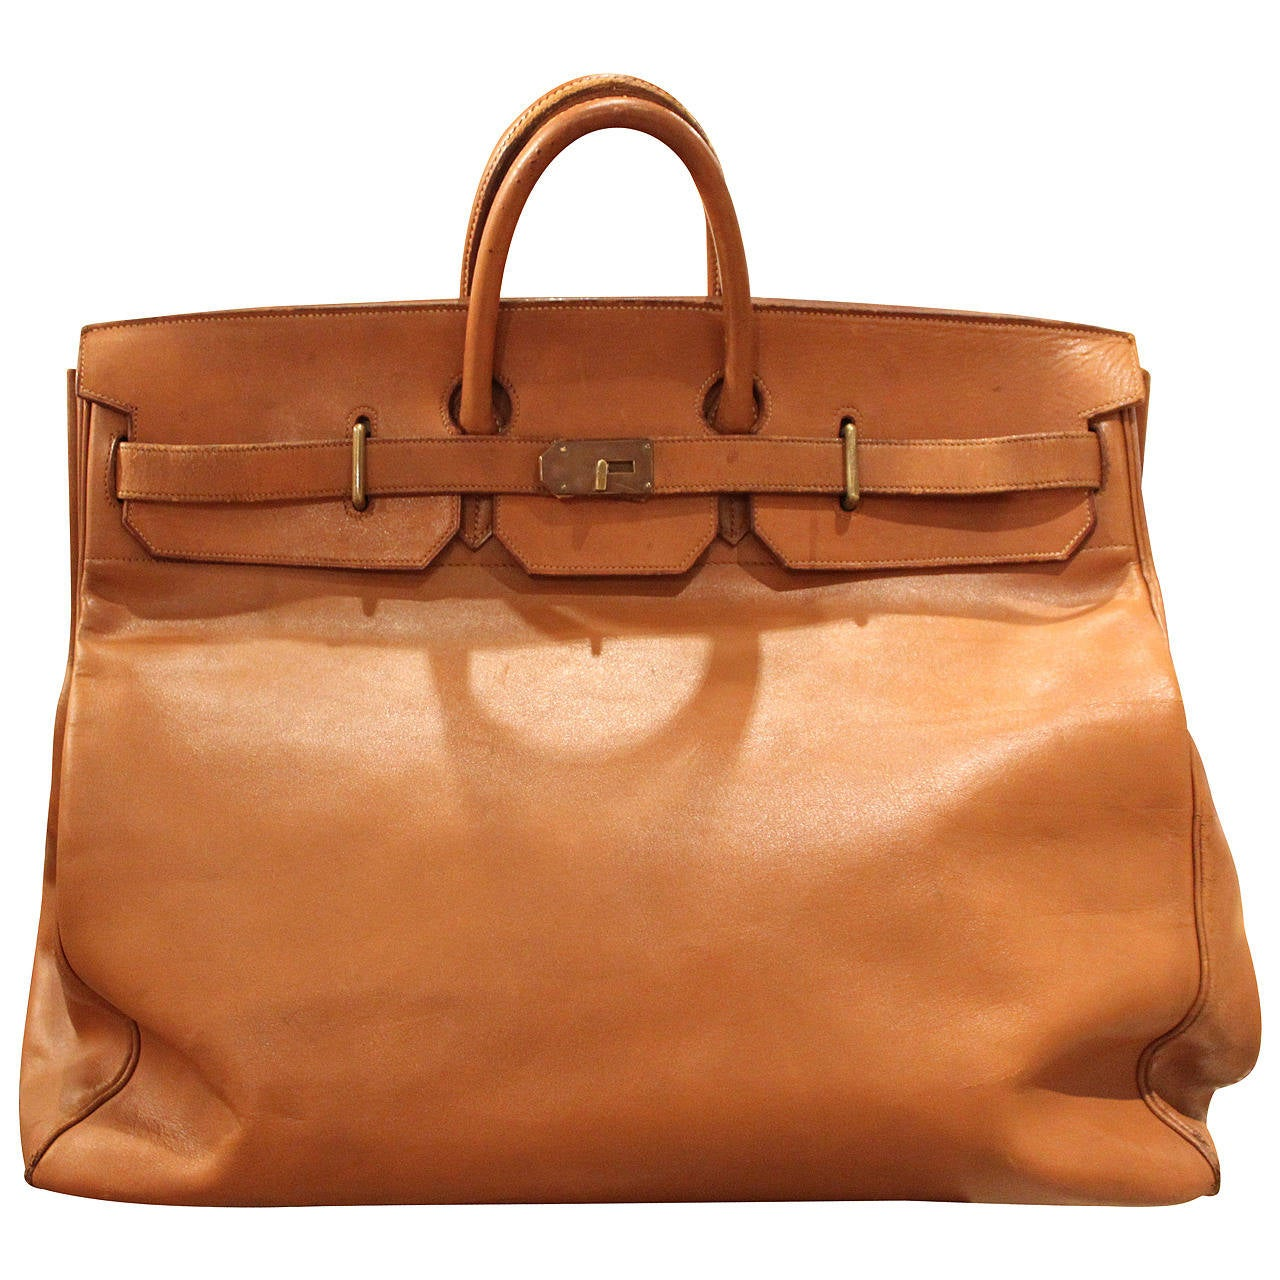 Hermes HAC Travel Bag 1